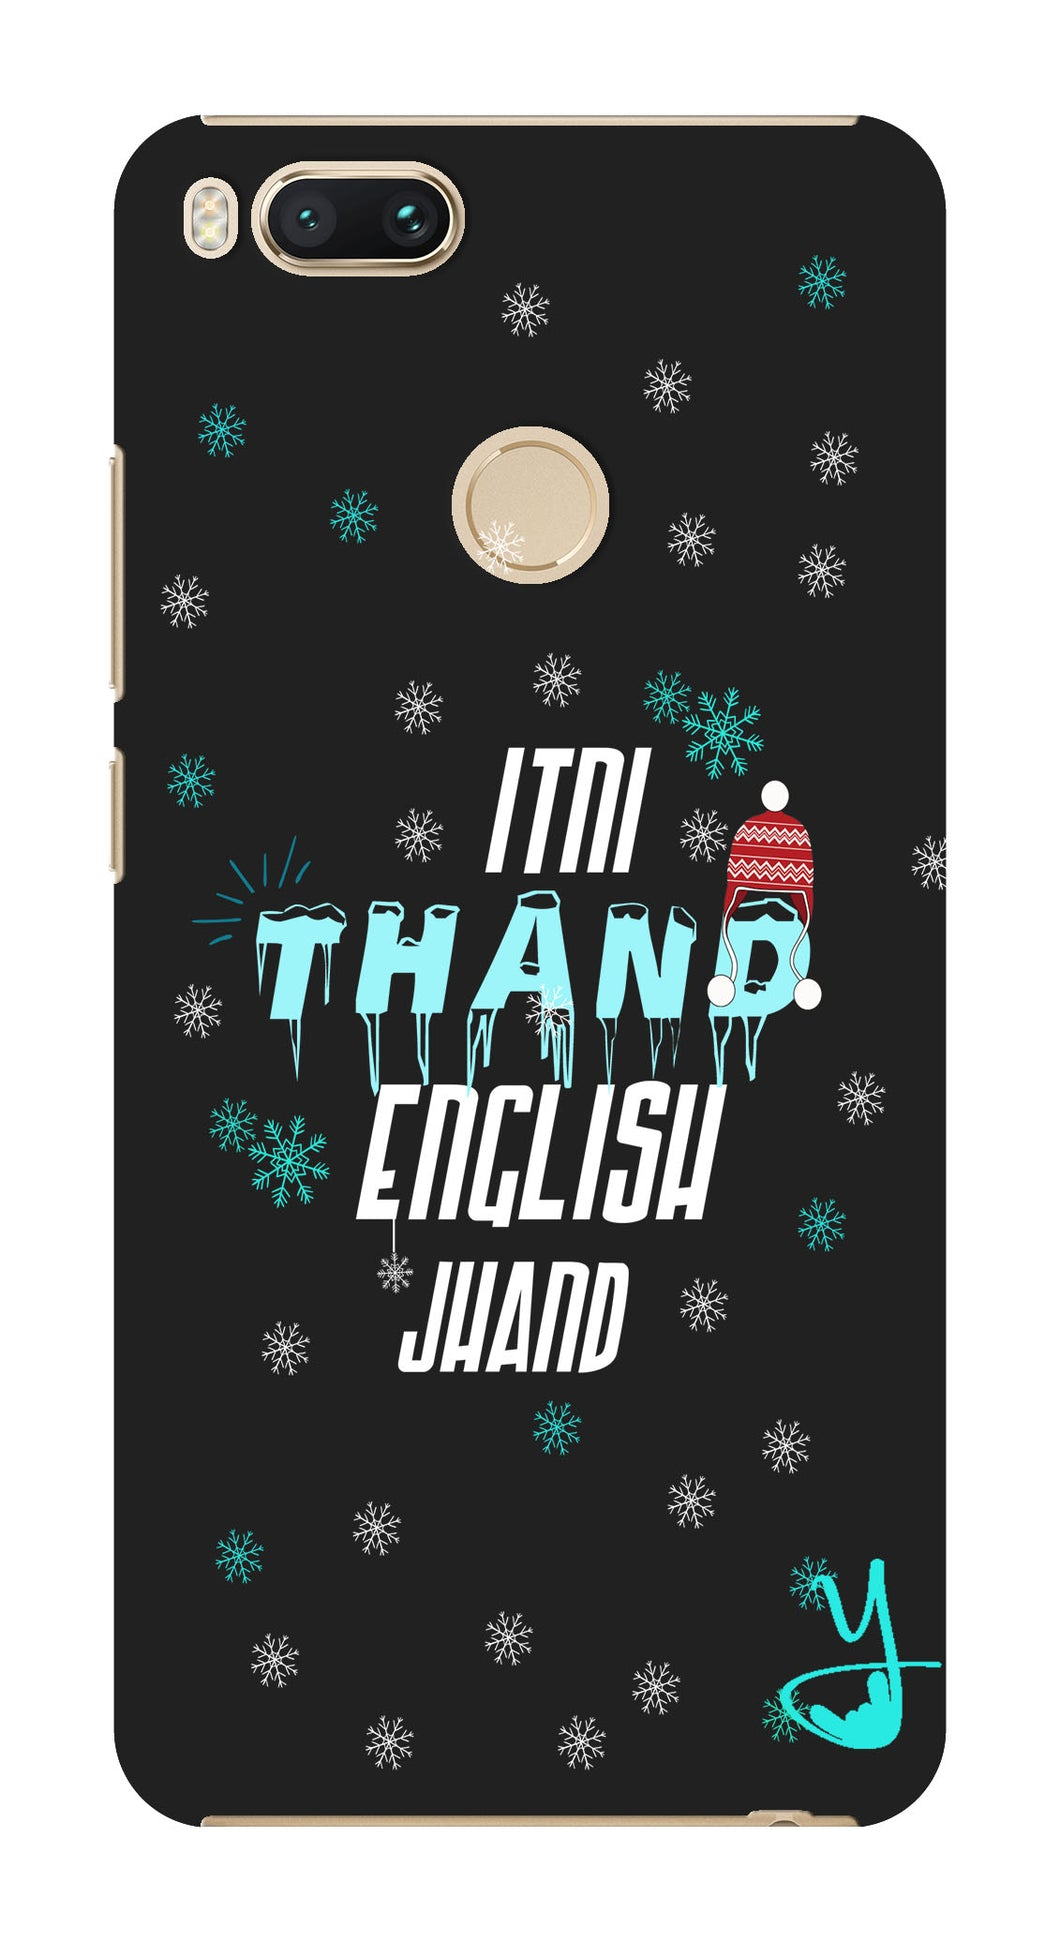 Itni Thand edition for Xiaomi Mi A1